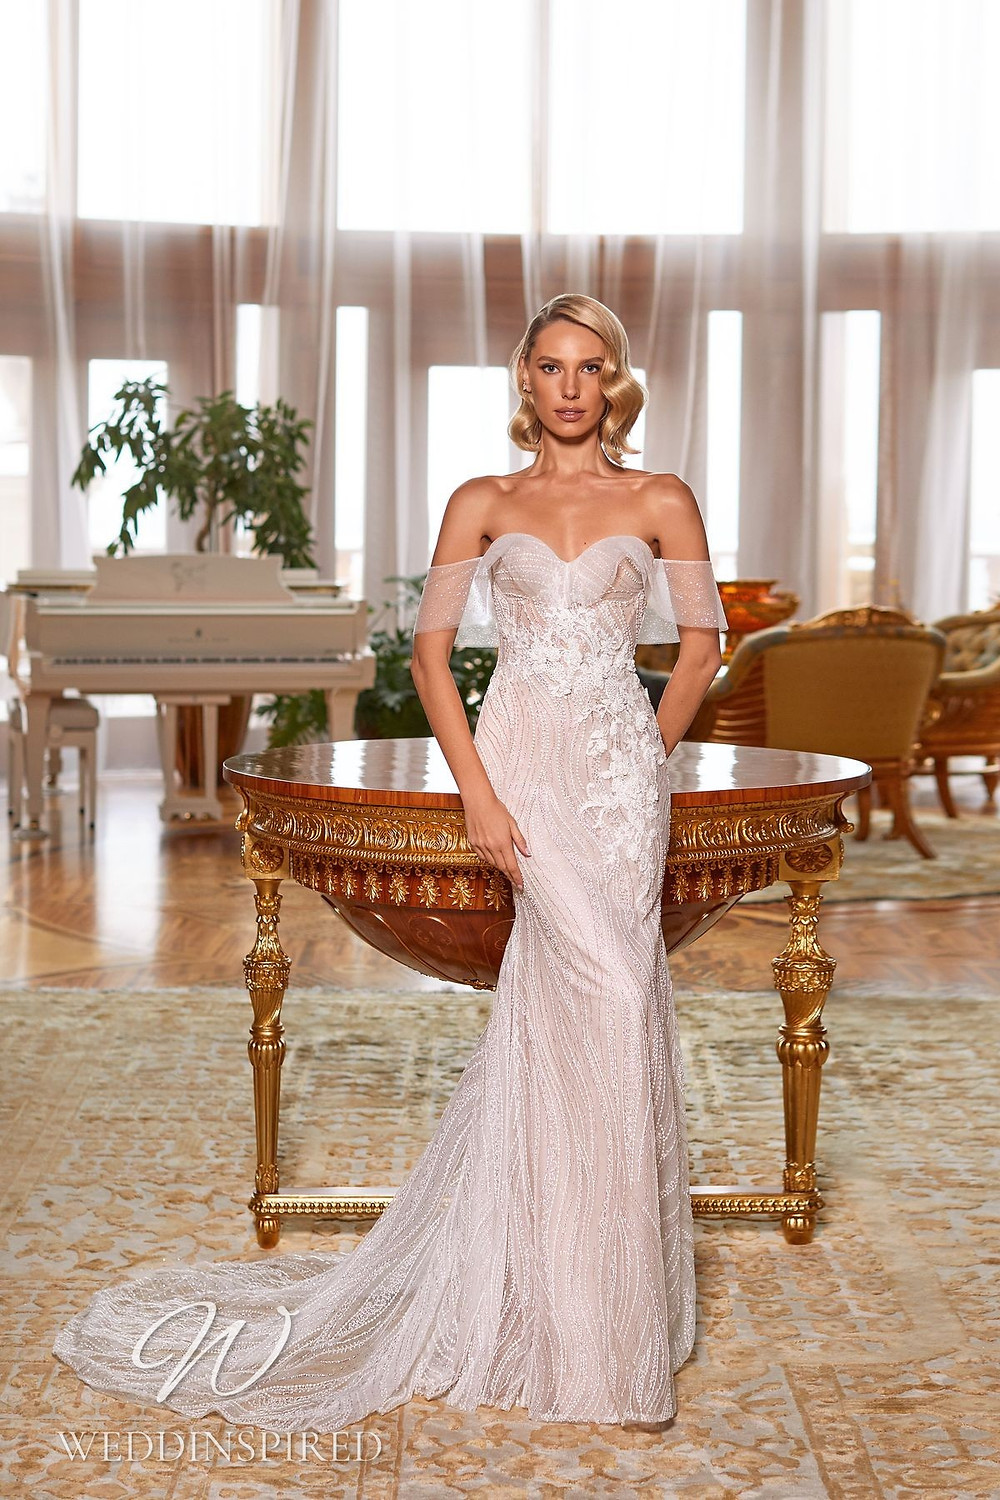 A Pollardi 2021 lace and tulle off the shoulder mermaid wedding dress